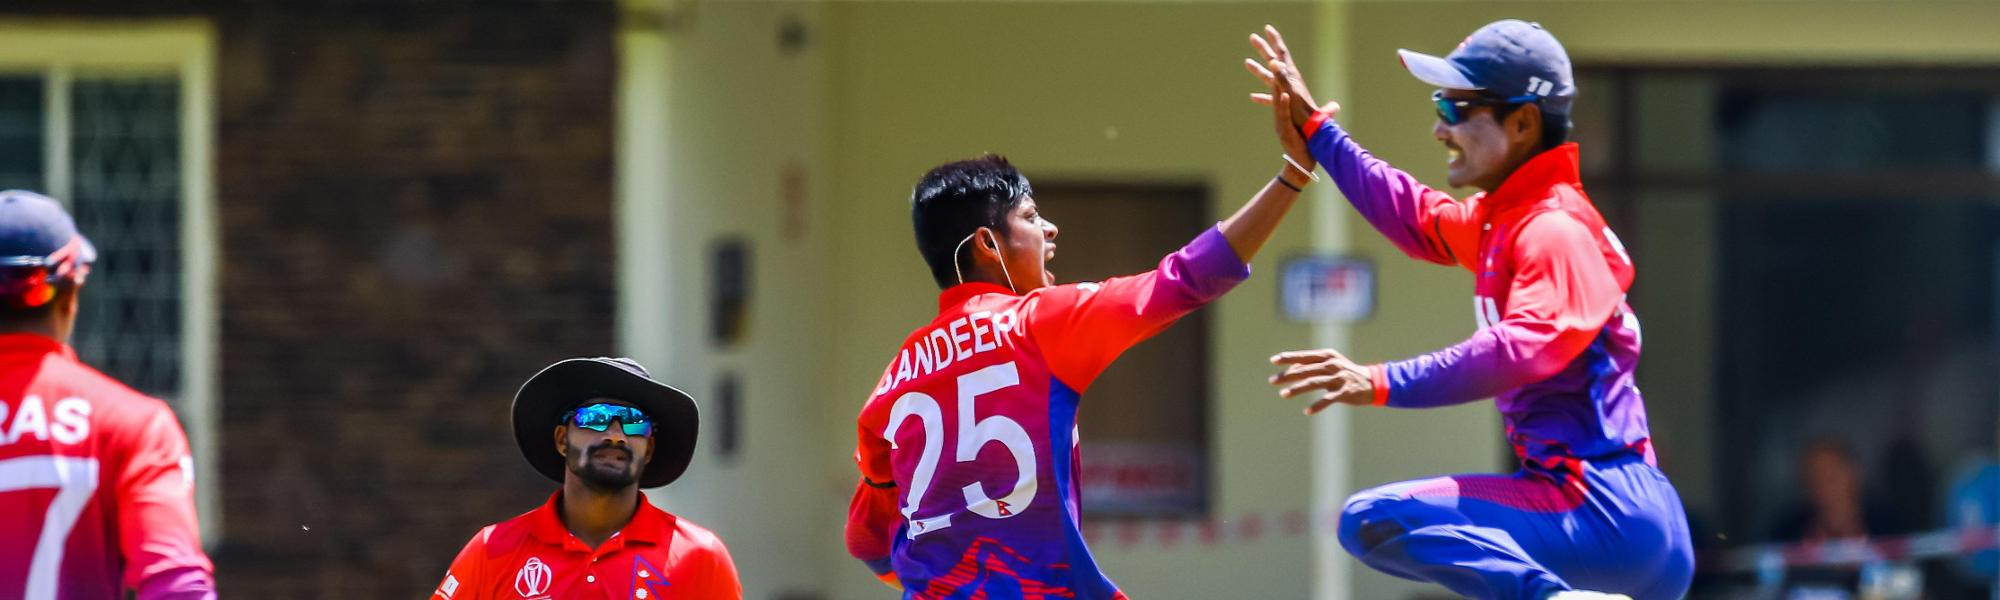 Nepal bowler Sandeep Lamichhane celebrates a wicket with team mates during a World Cup Qualifier play off cricket match between Nepal and Papua New Guinea at Old Hararians Sports Club March 15 2018 (©ICC).